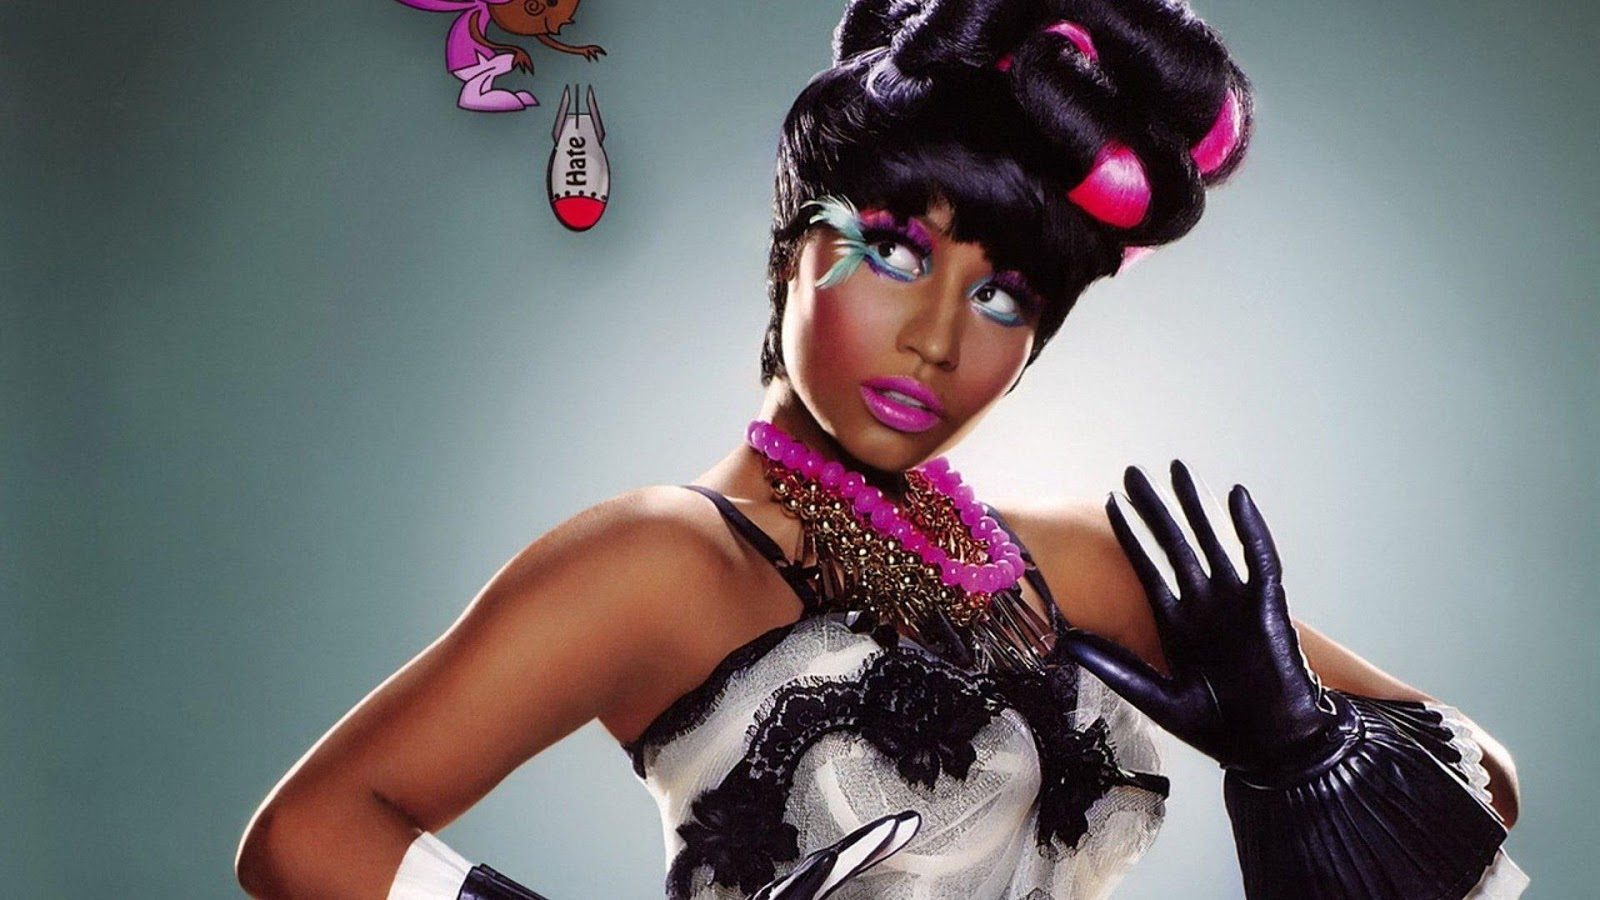 Full HD Wallpapers Desktop Nicki Minaj Wallpapers Iphone